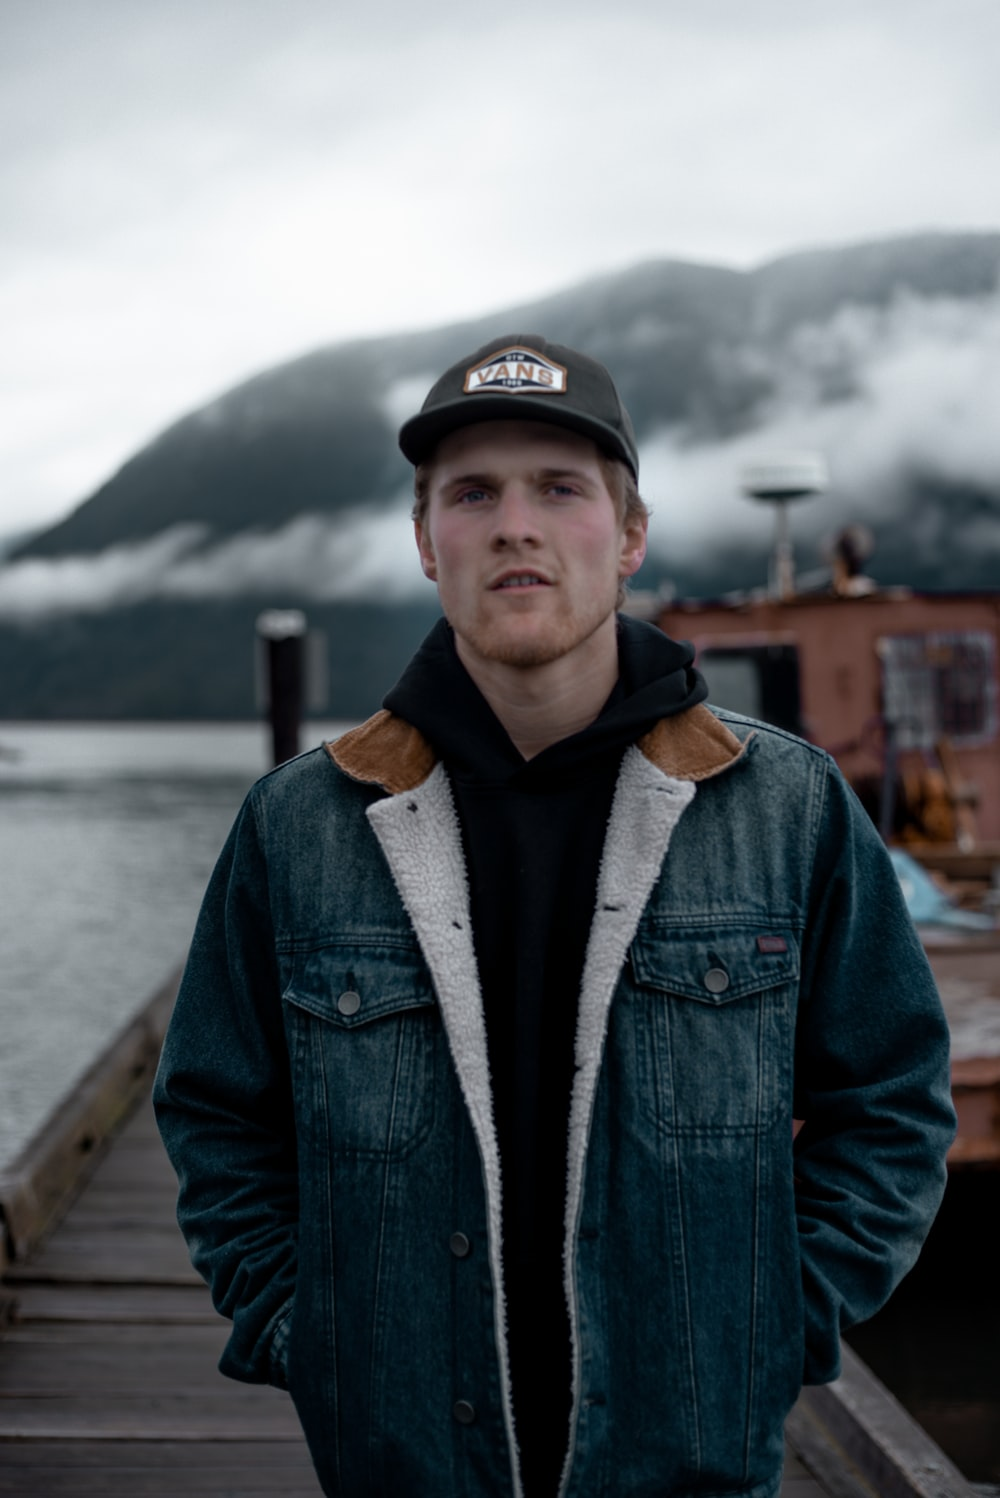 man in blue denim jacket and black cap standing on wooden dock during daytime